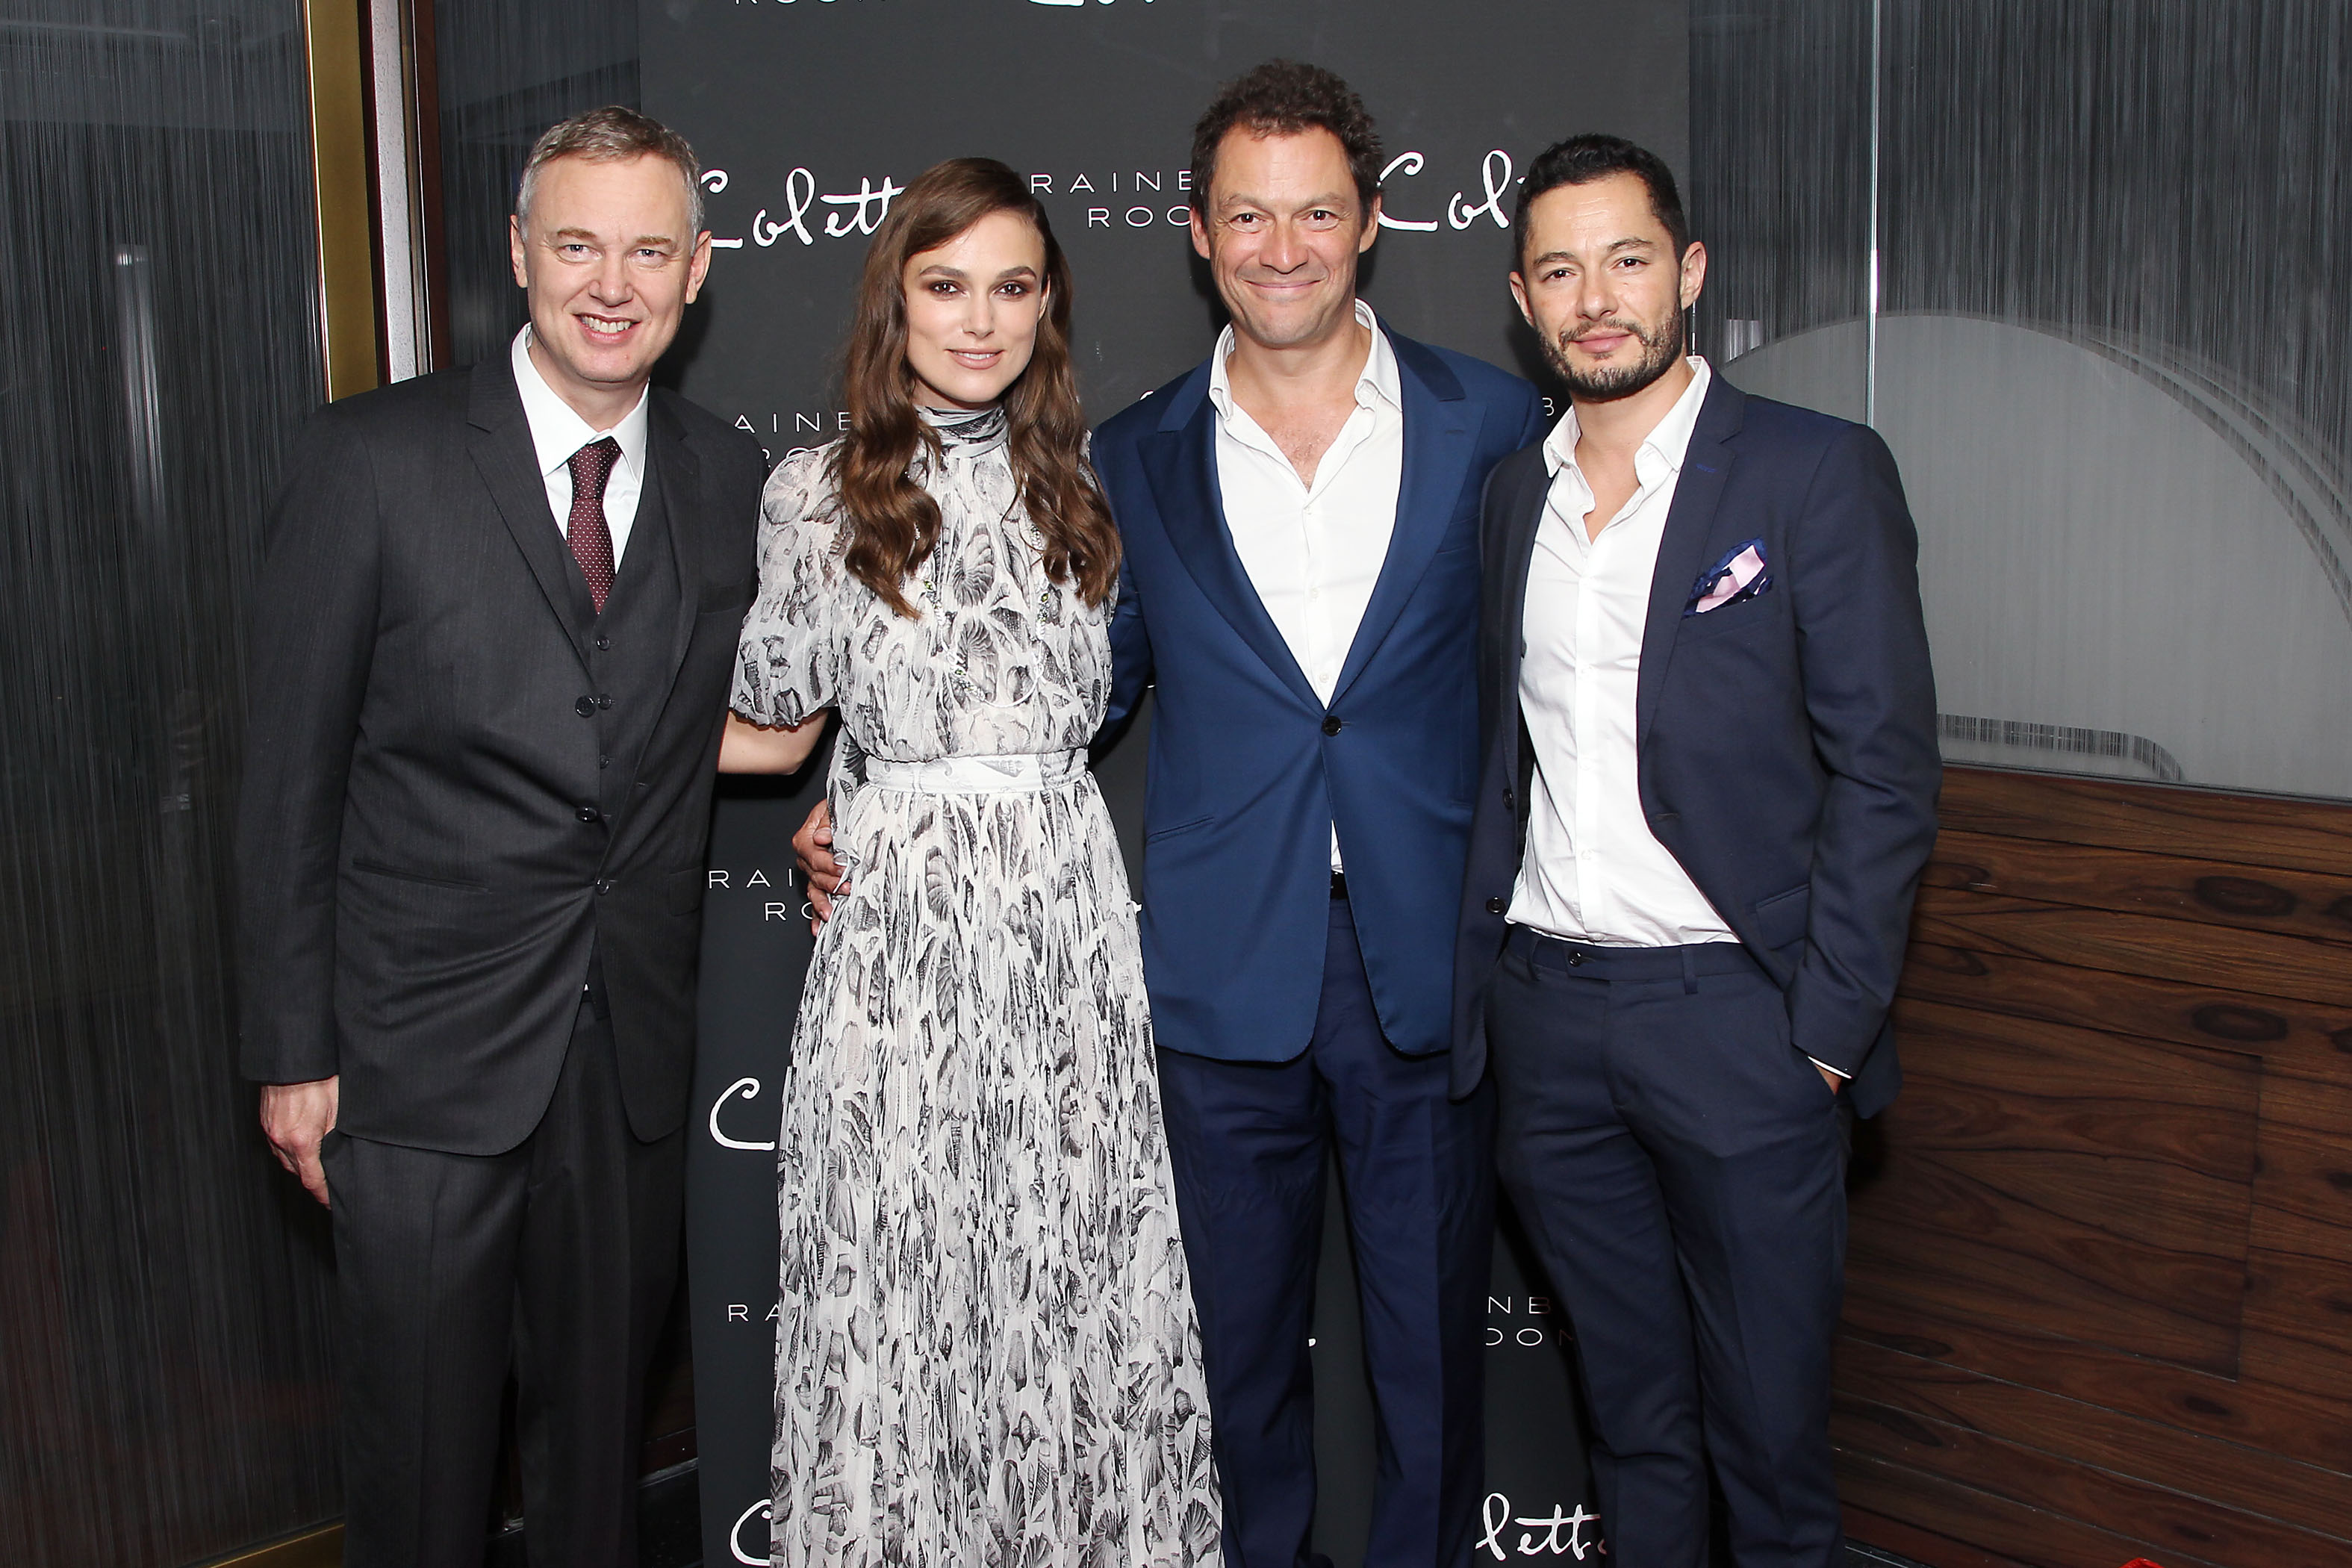 - New York, NY - 9/13/18 - New York Special Screening of COLETTE - After Party-Pictured: Wash Westmoreland (Director), Keira Knightley, Dominic West, Jake Graf-Photo by: Patrick Lewis/Starpix-Location: Rainbow Room